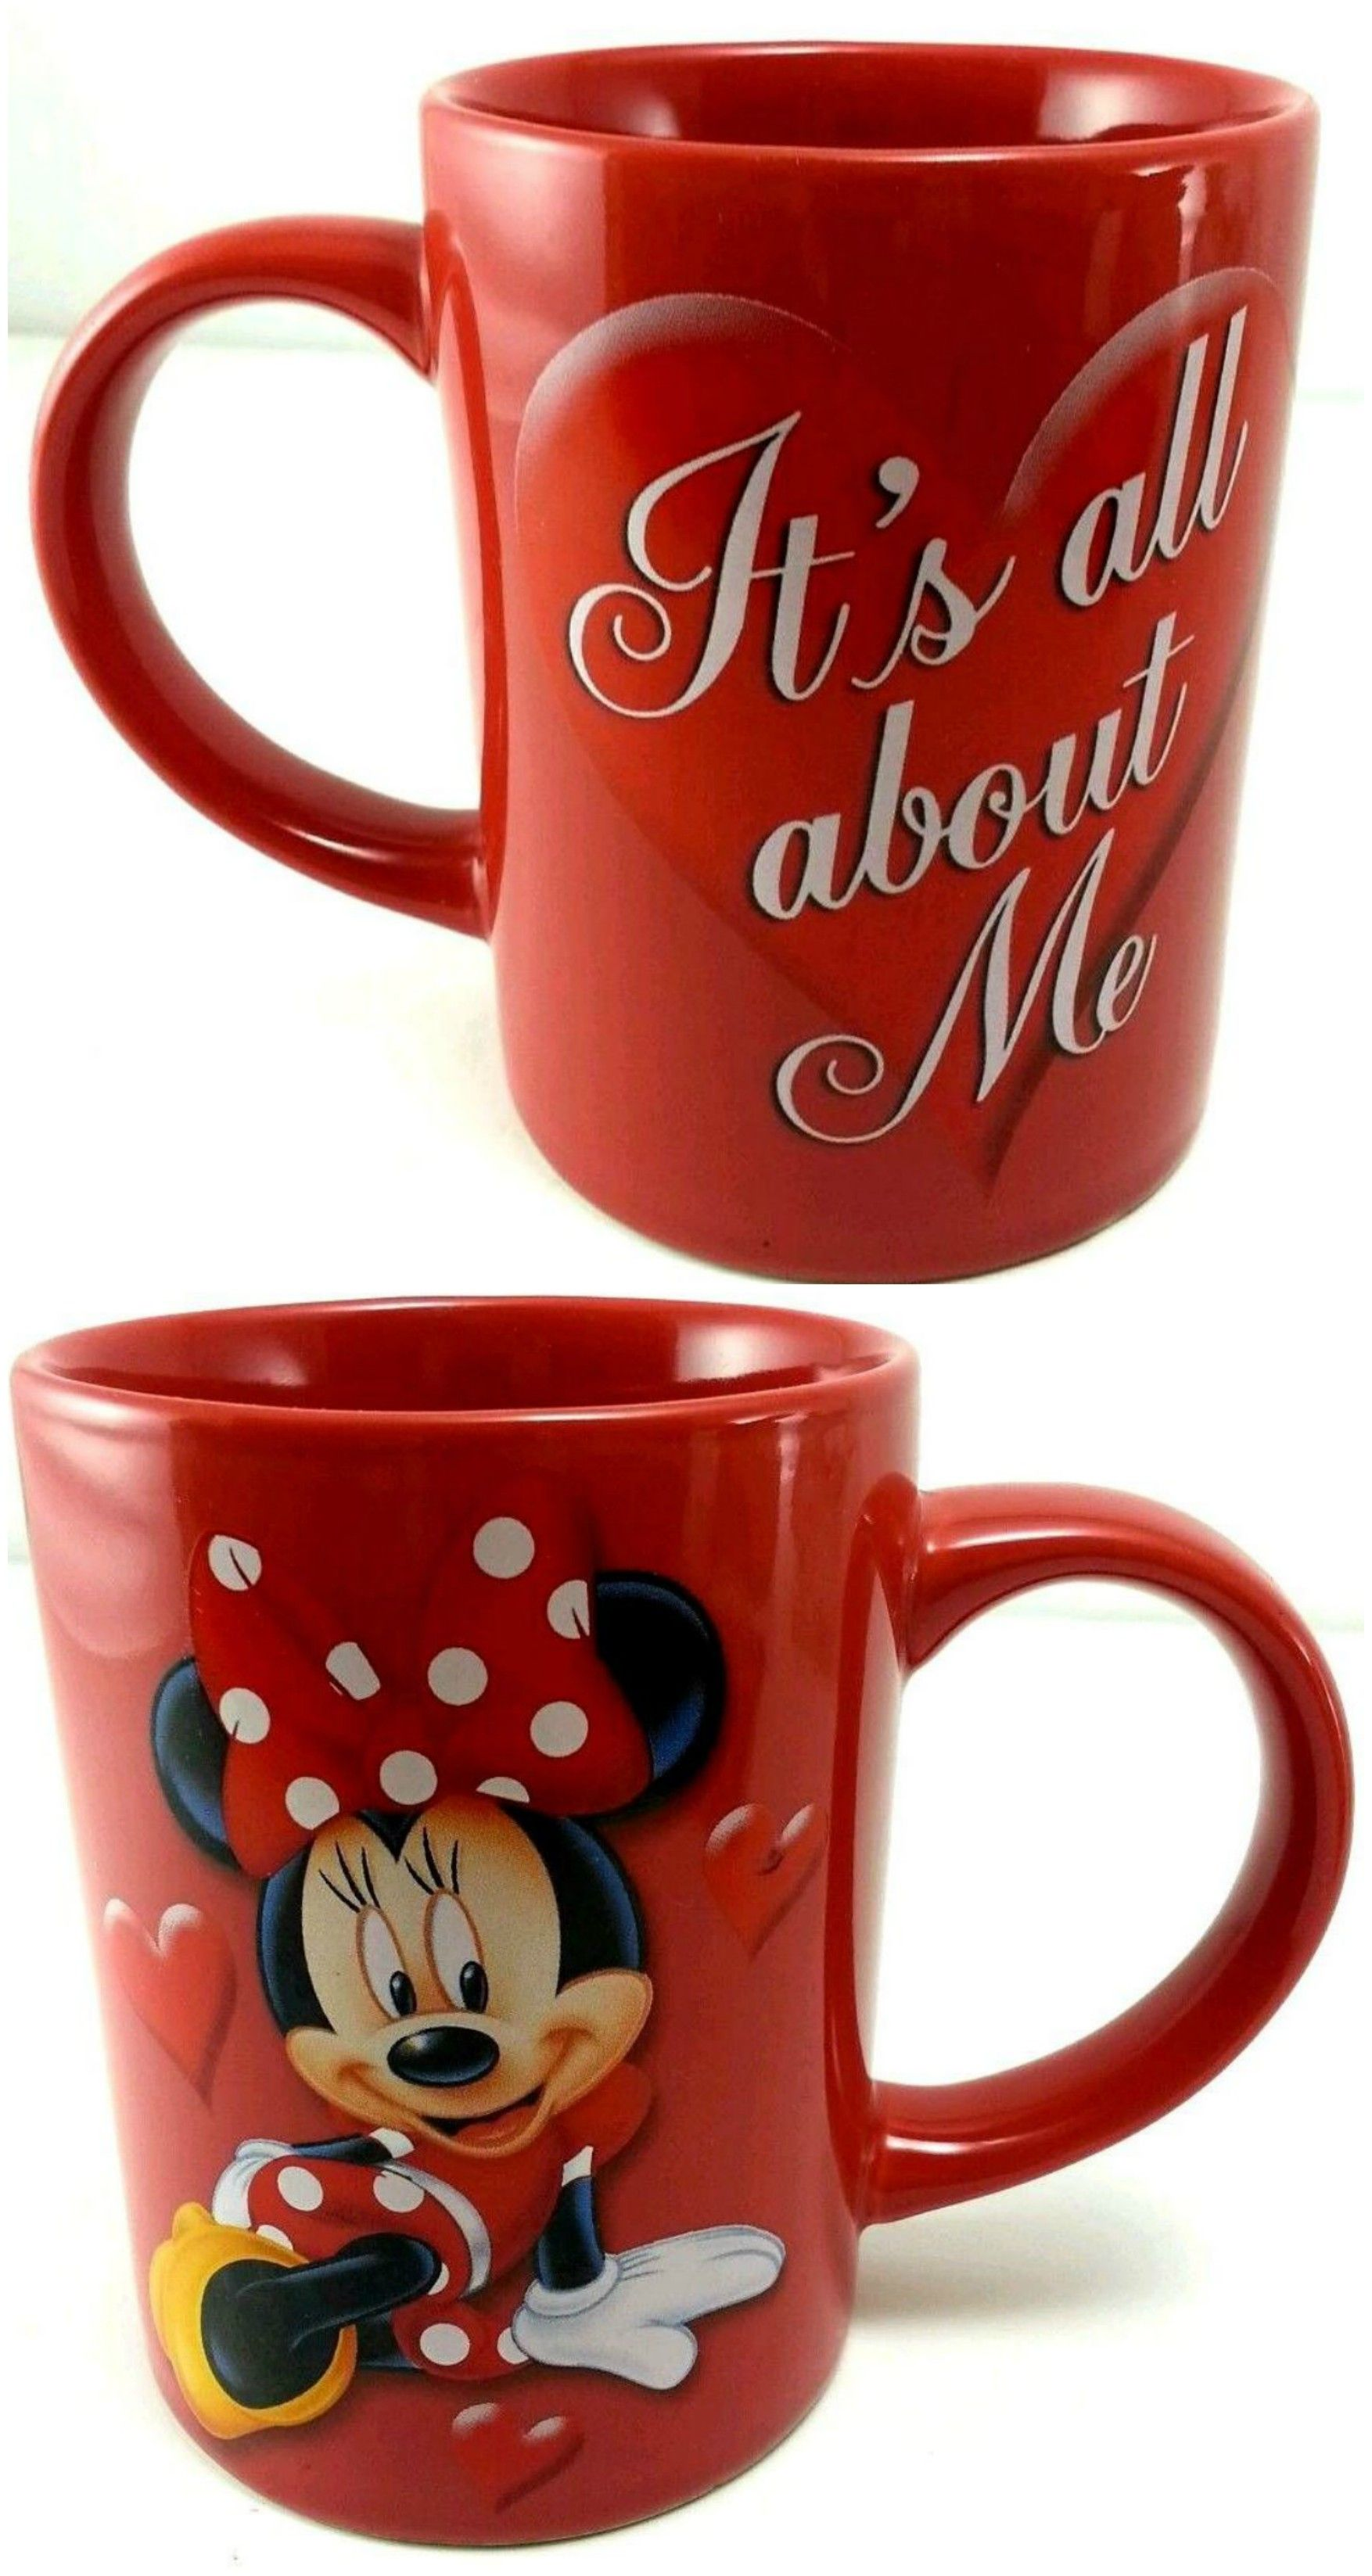 cfcd04d0f60 Disney's Minnie Mouse bright red Jerry Leigh It's All About ME coffee mug.  LOVE it. Great for Valentine's Day, too!